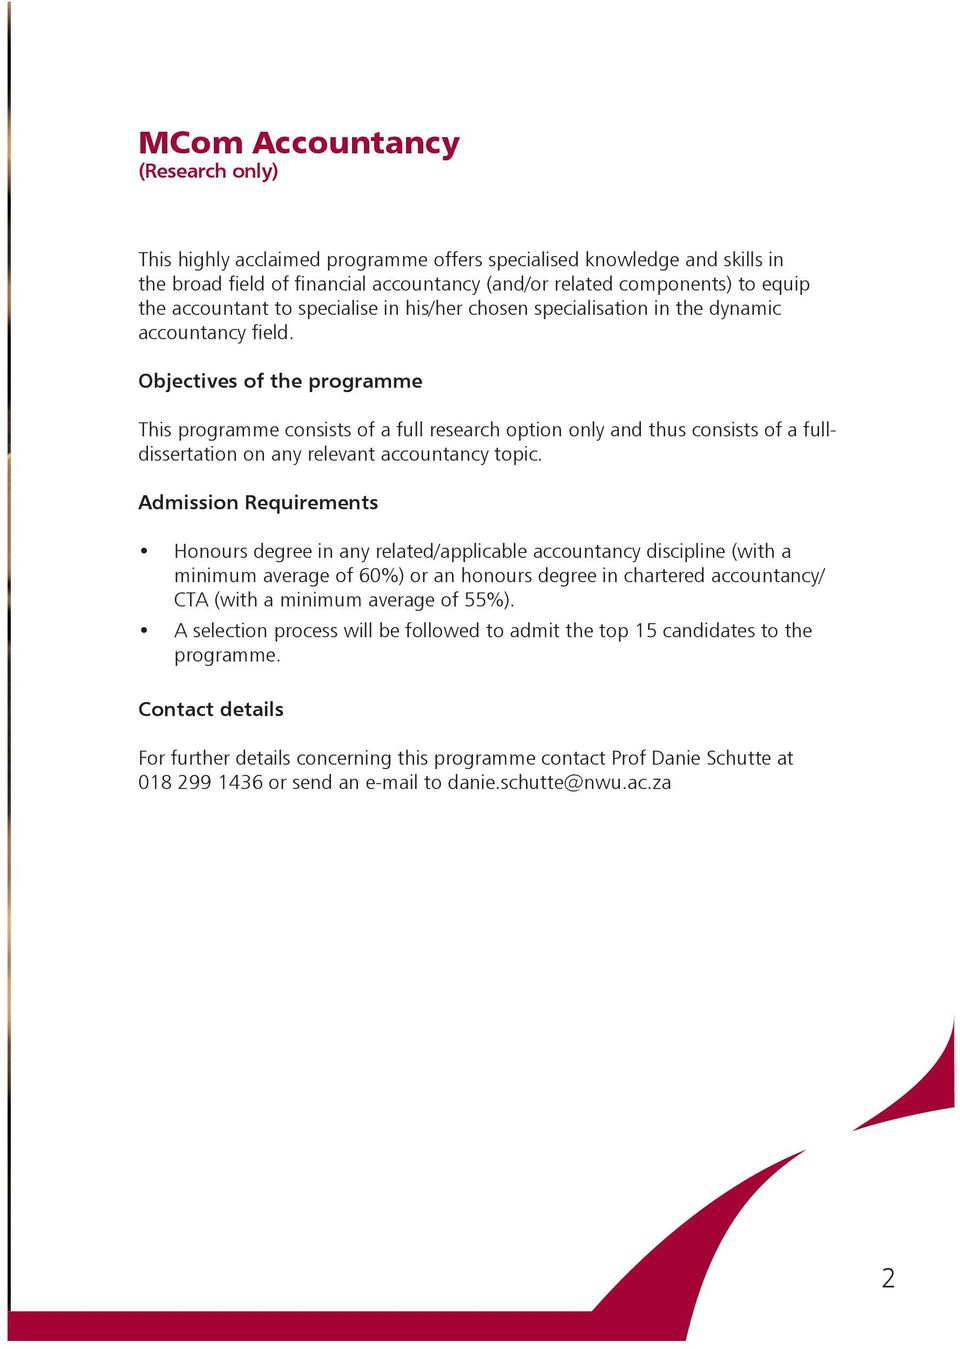 Objectives of the programme This programme consists of a full research option only and thus consists of a fulldissertation on any relevant accountancy topic.